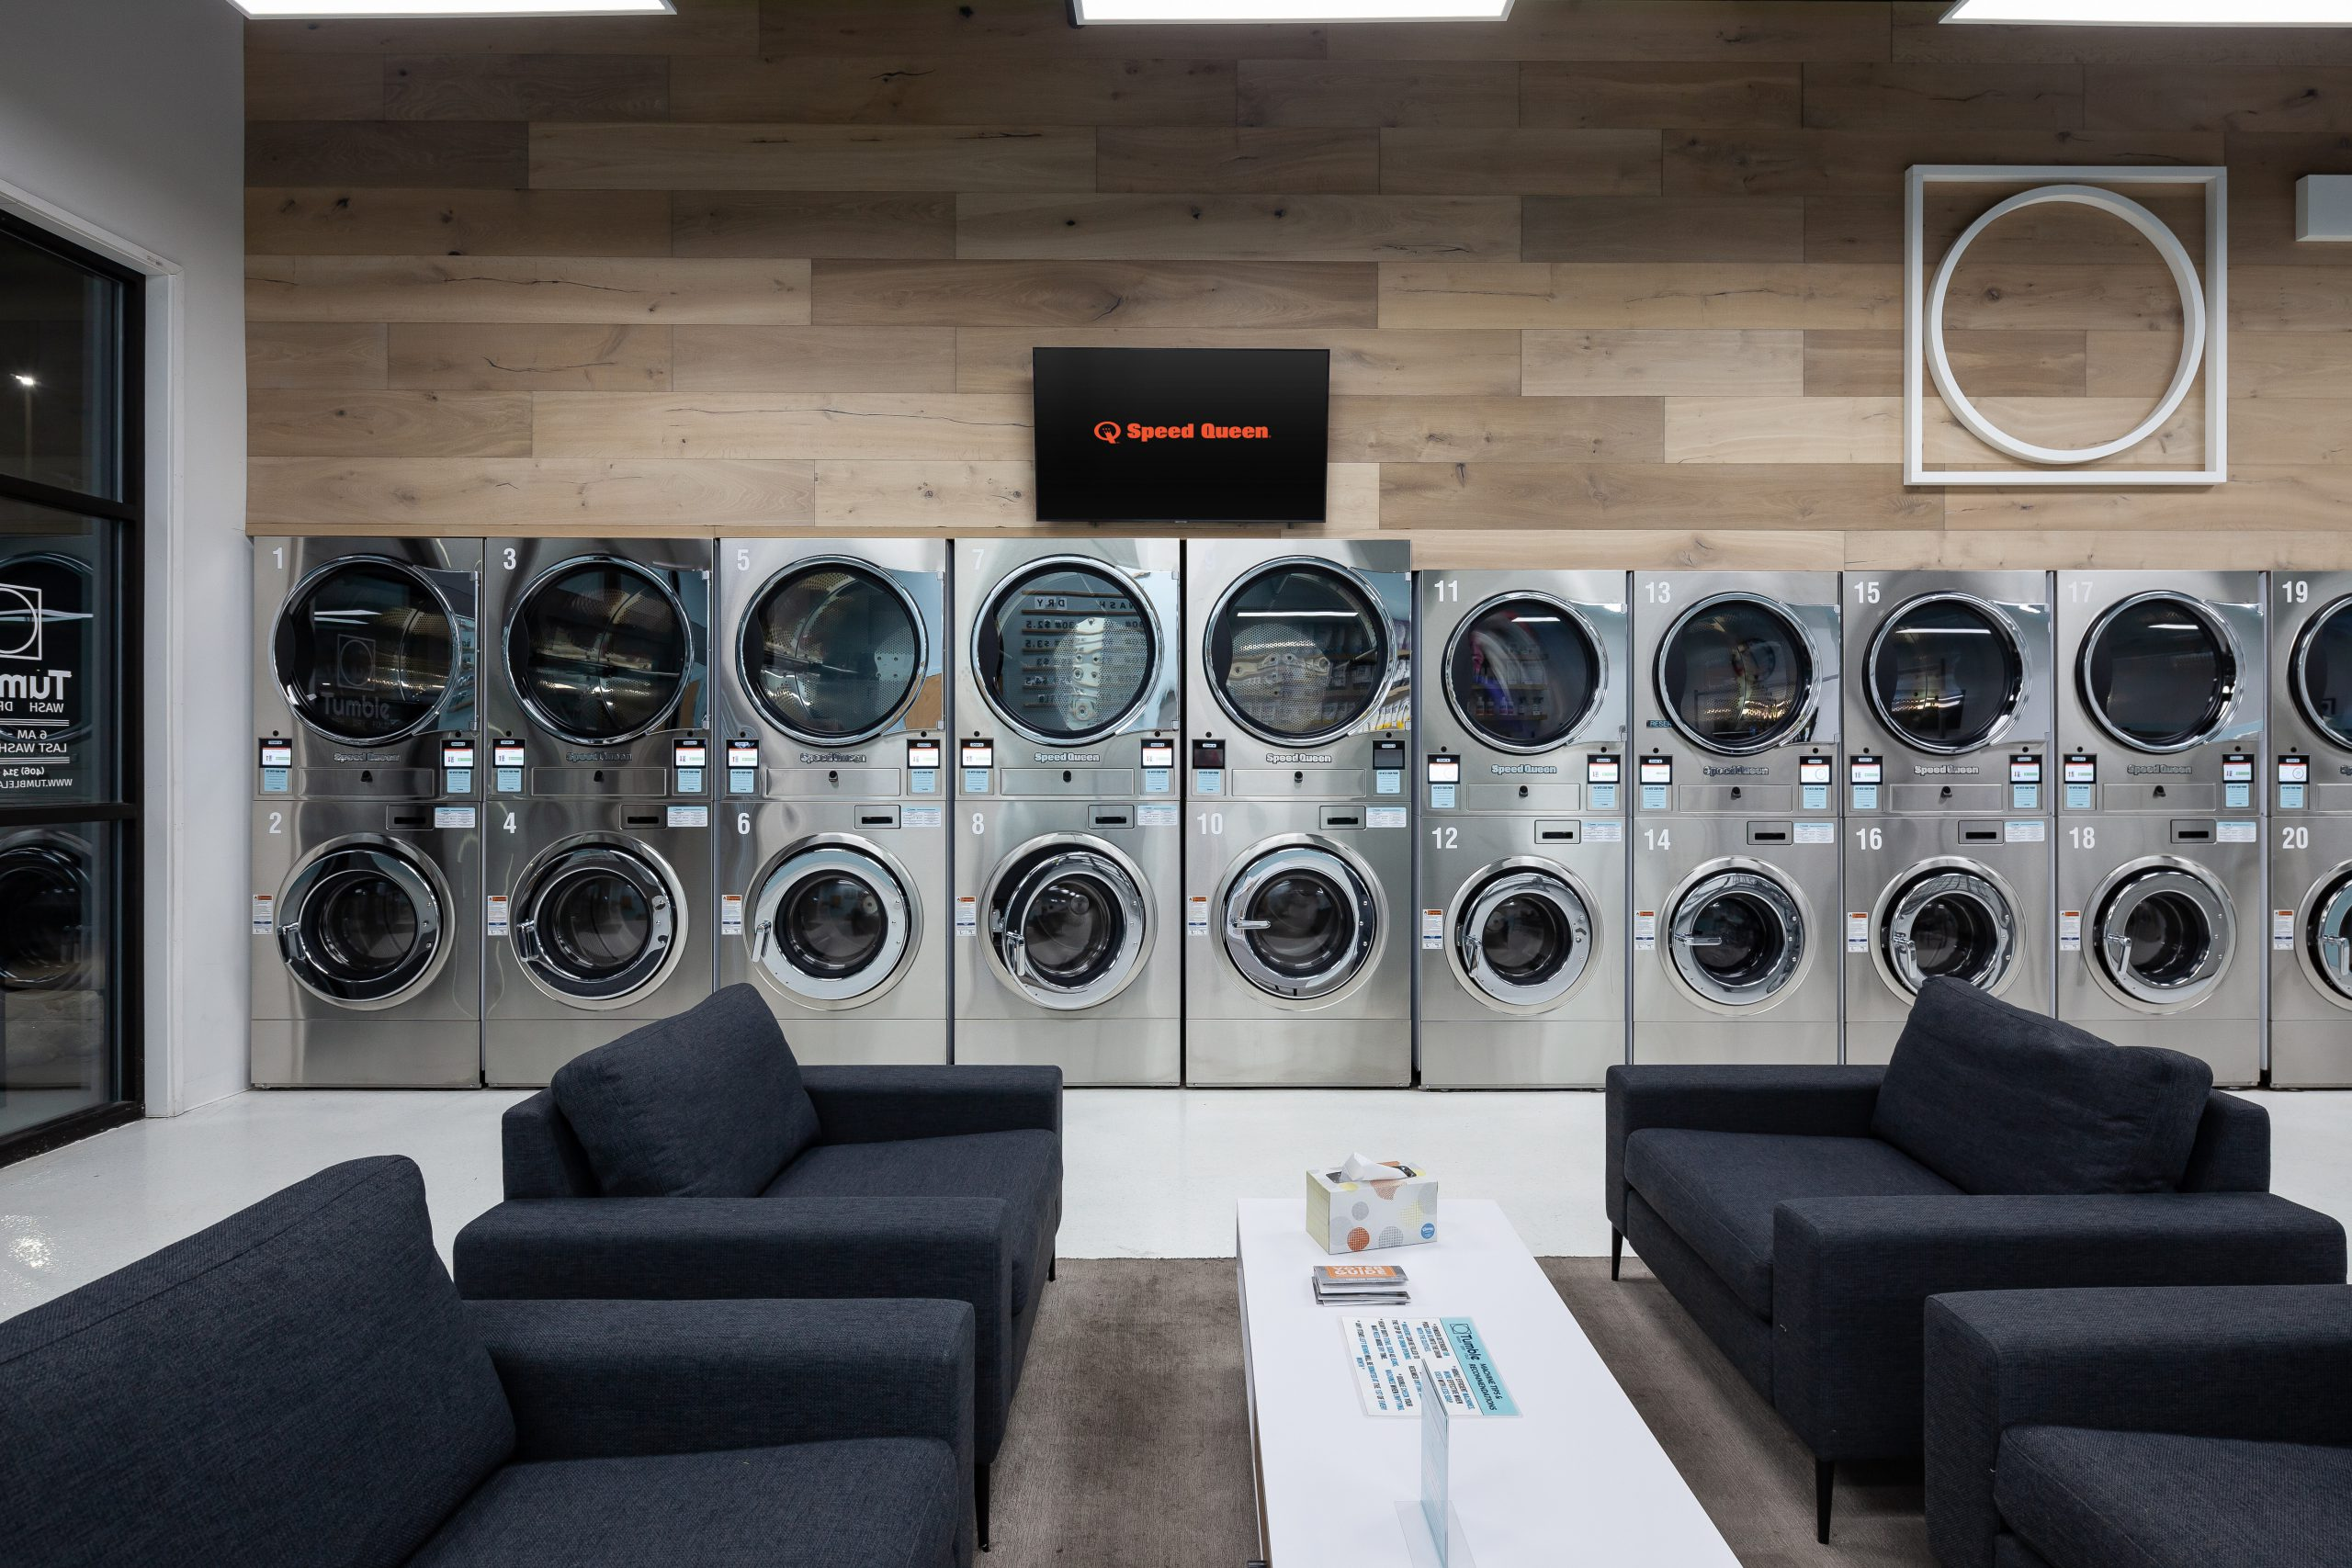 Speed Queen Welcomes Alliance Laundry Equipment to its Network